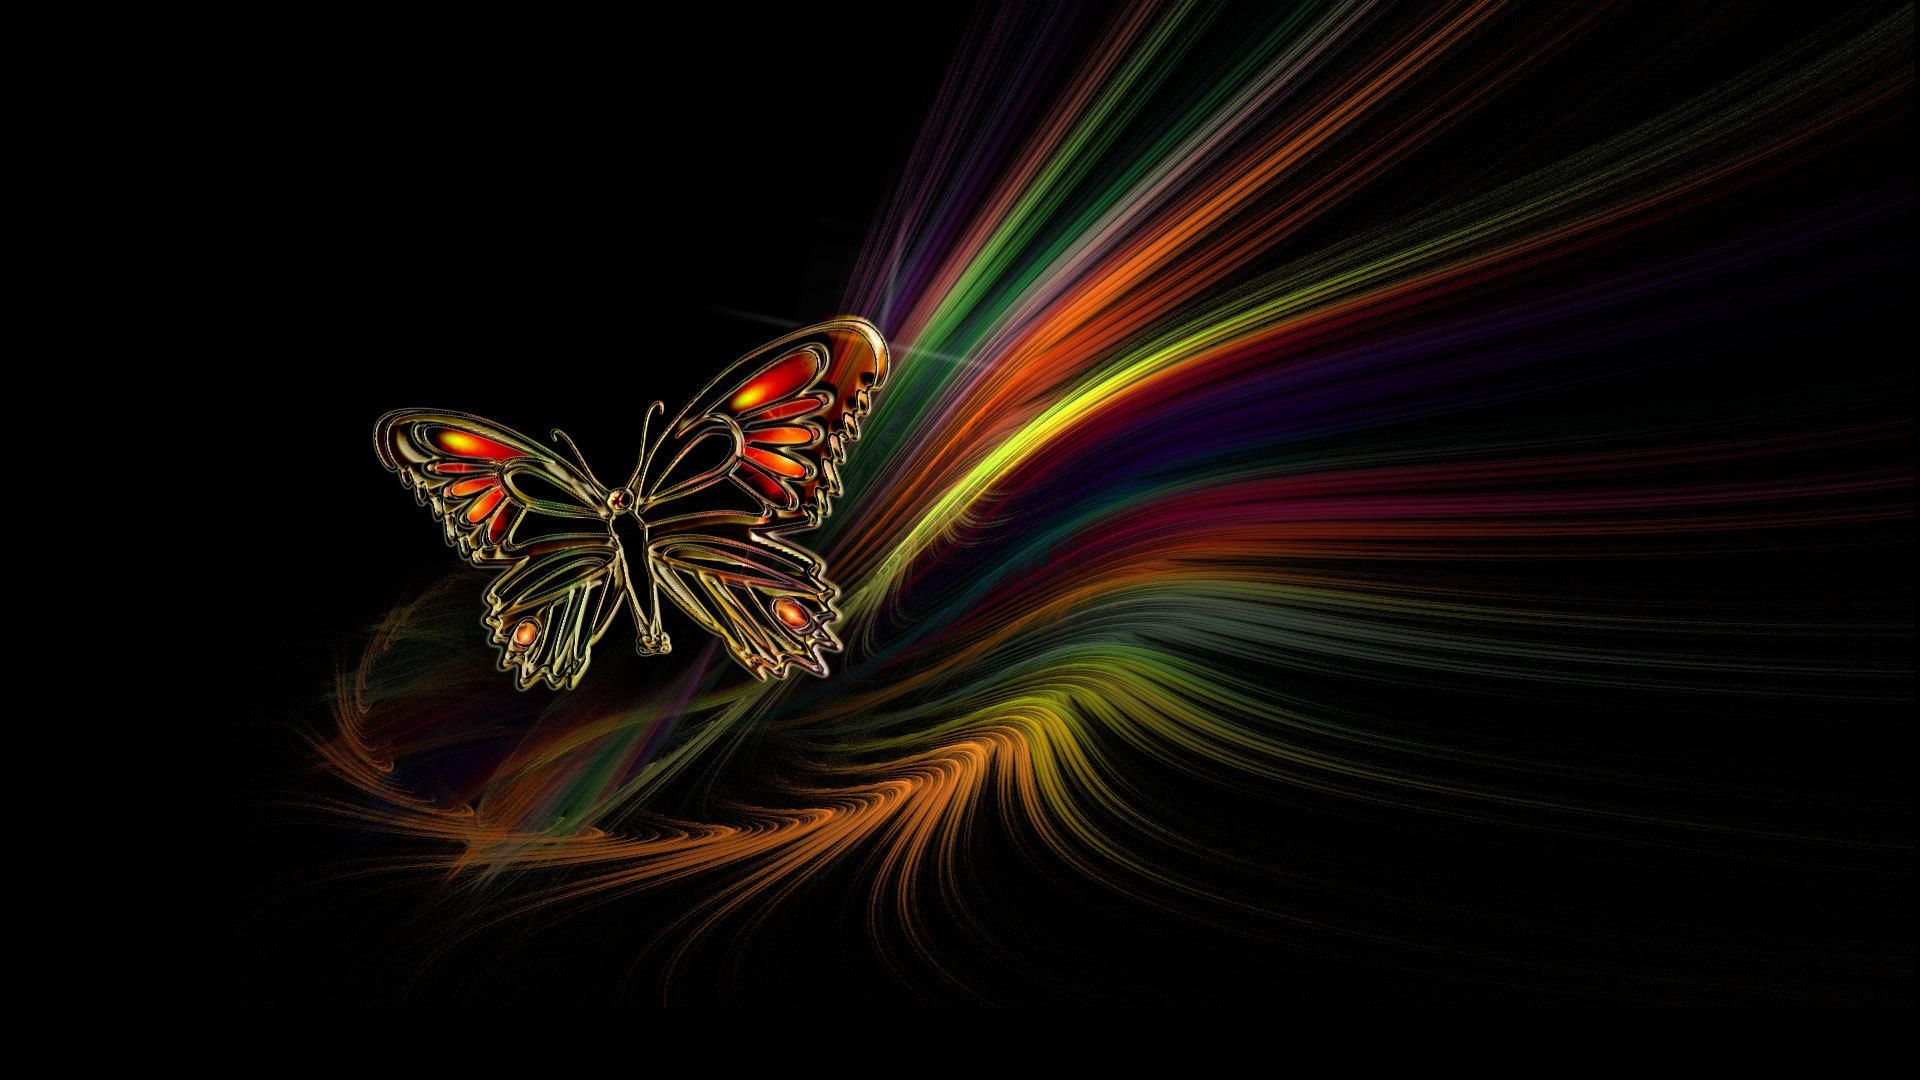 301 Moved Permanently Butterfly Wallpaper Nature Wallpaper Abstract